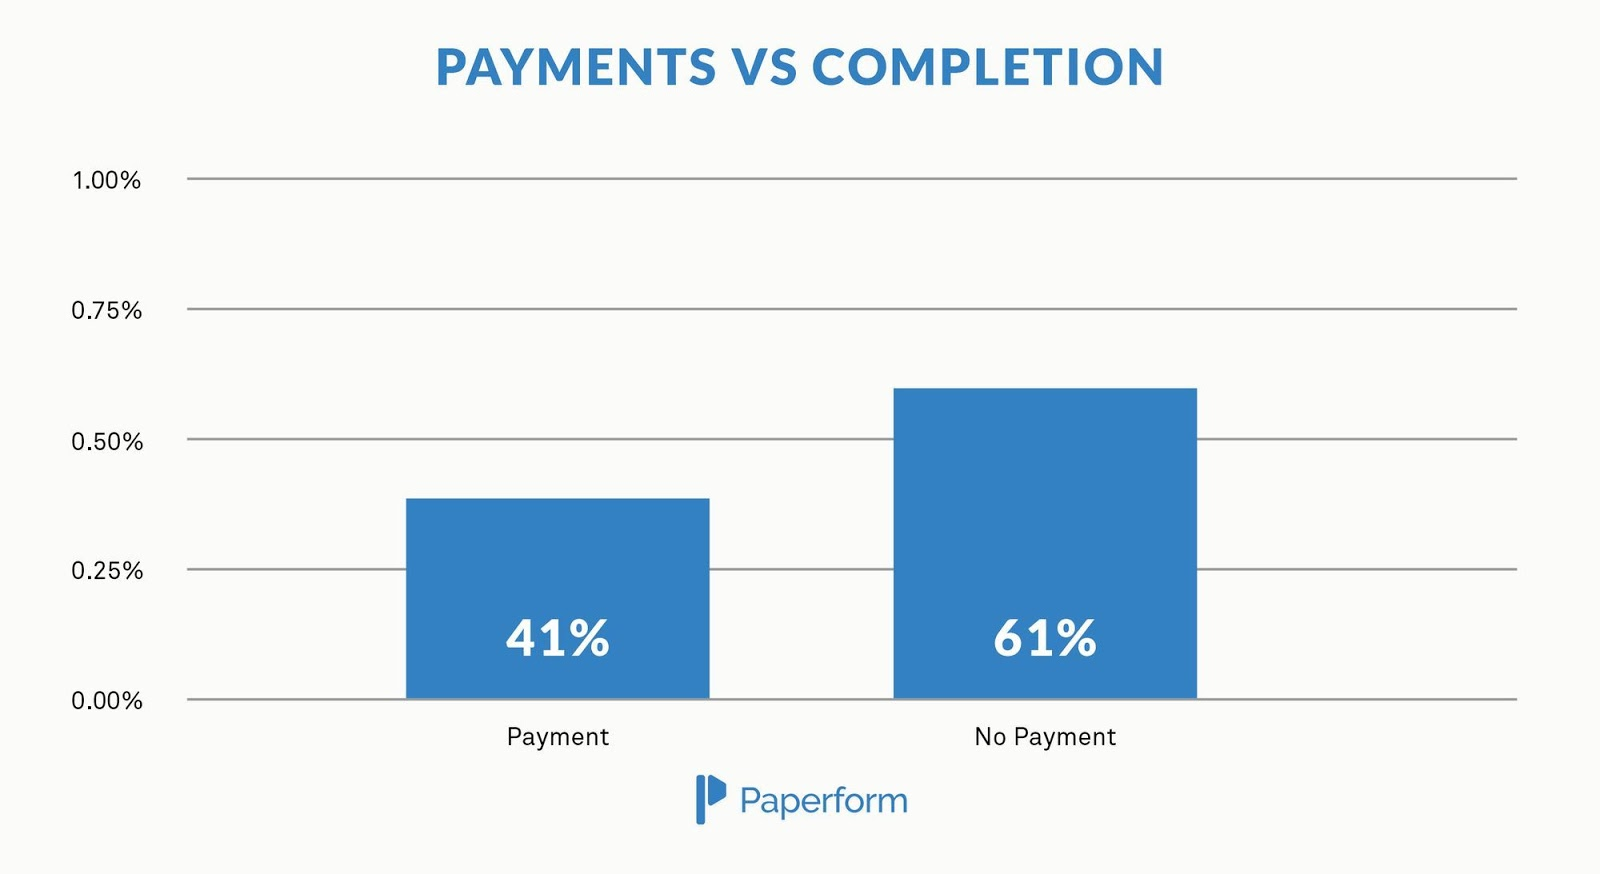 LandingPage_Analysis_Charts_Payments_vs_Completion